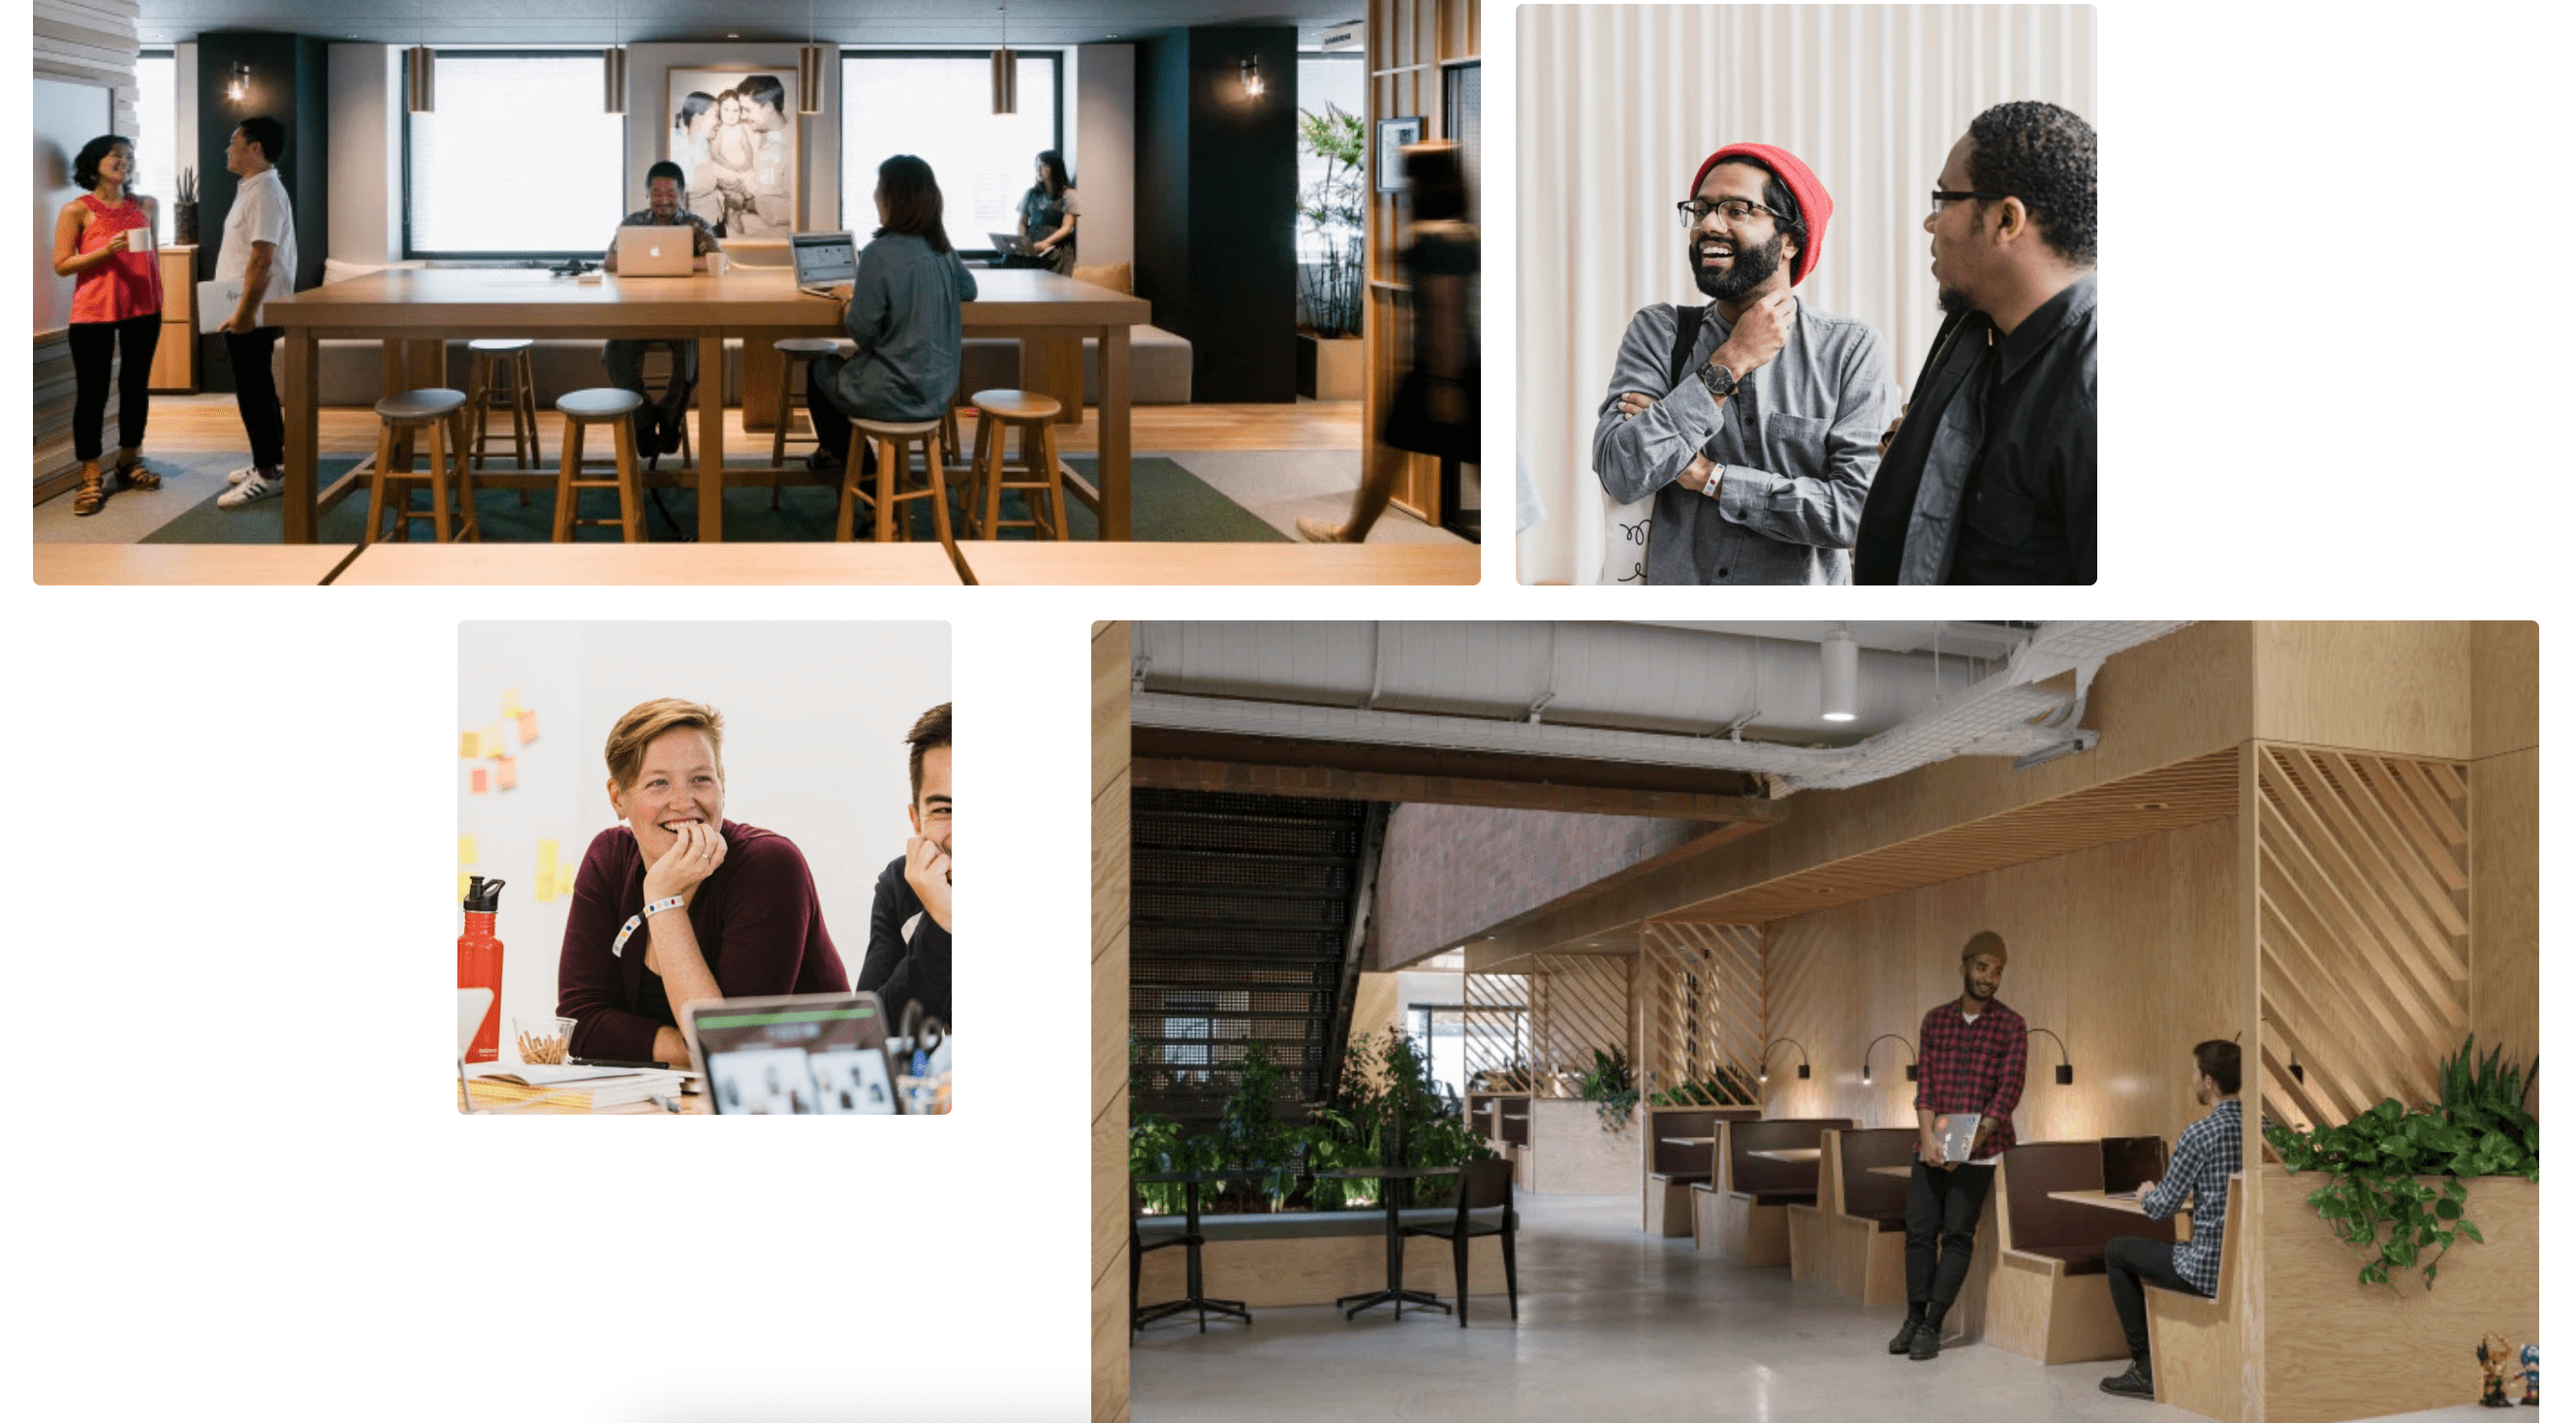 Sample image from AirBnB careers page.